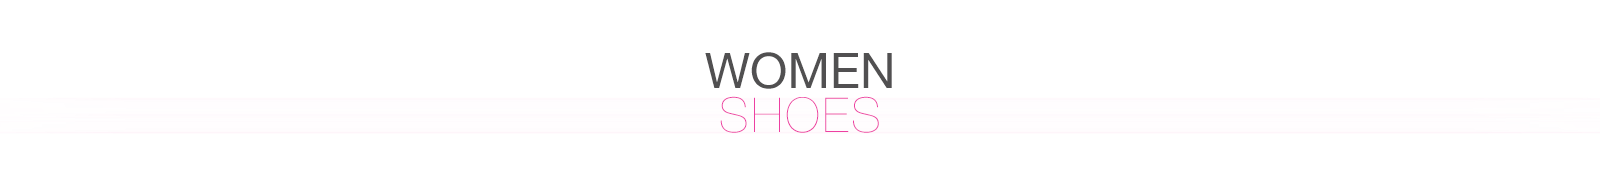 WOMEN - Shoes